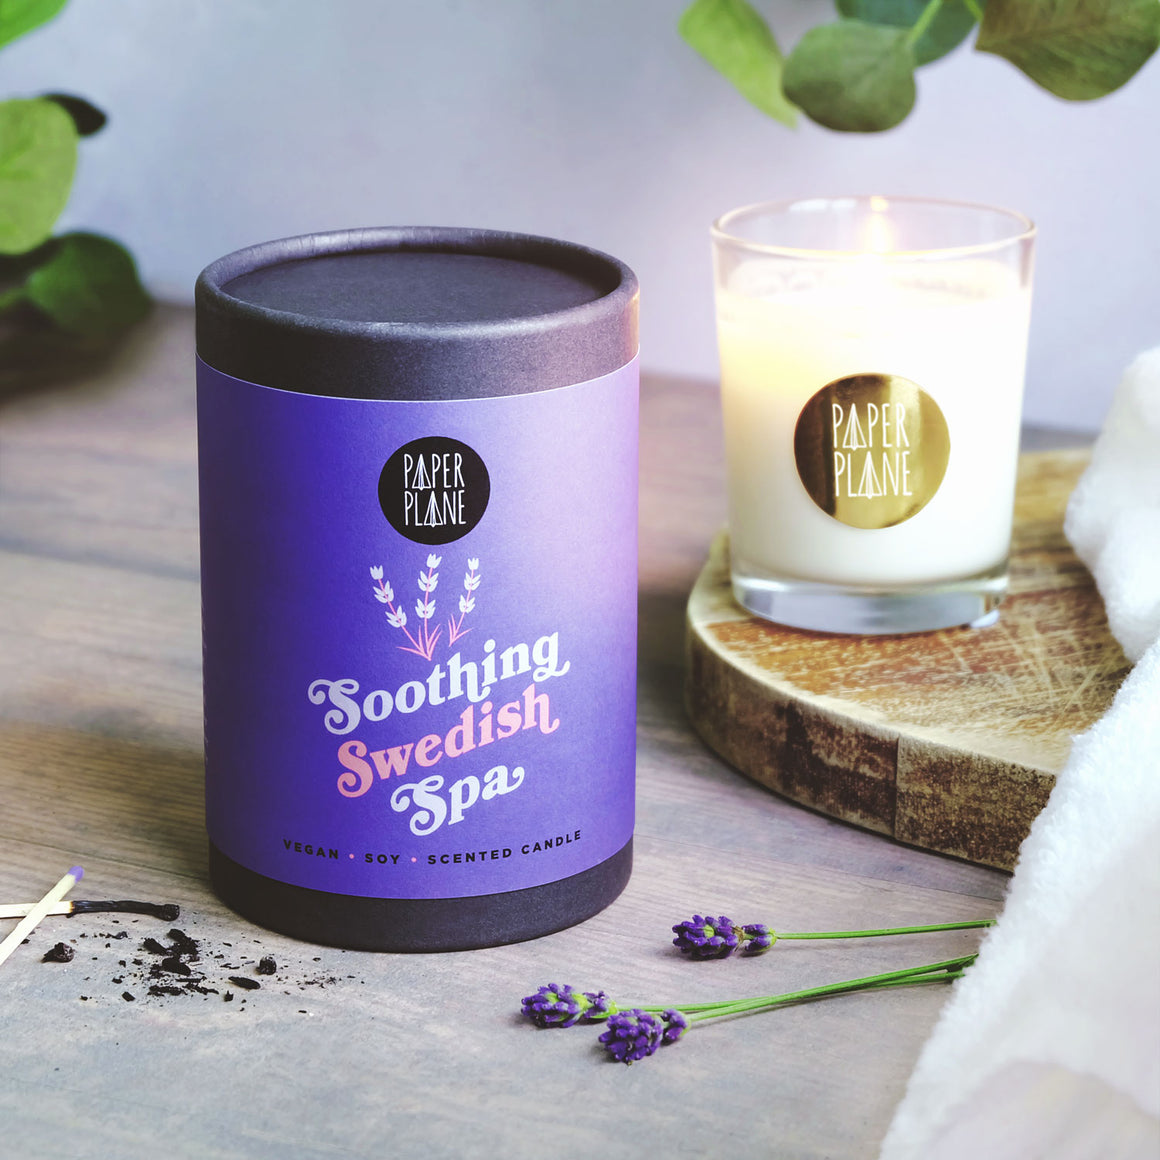 Soothing Swedish Spa Vegan Soy Candle